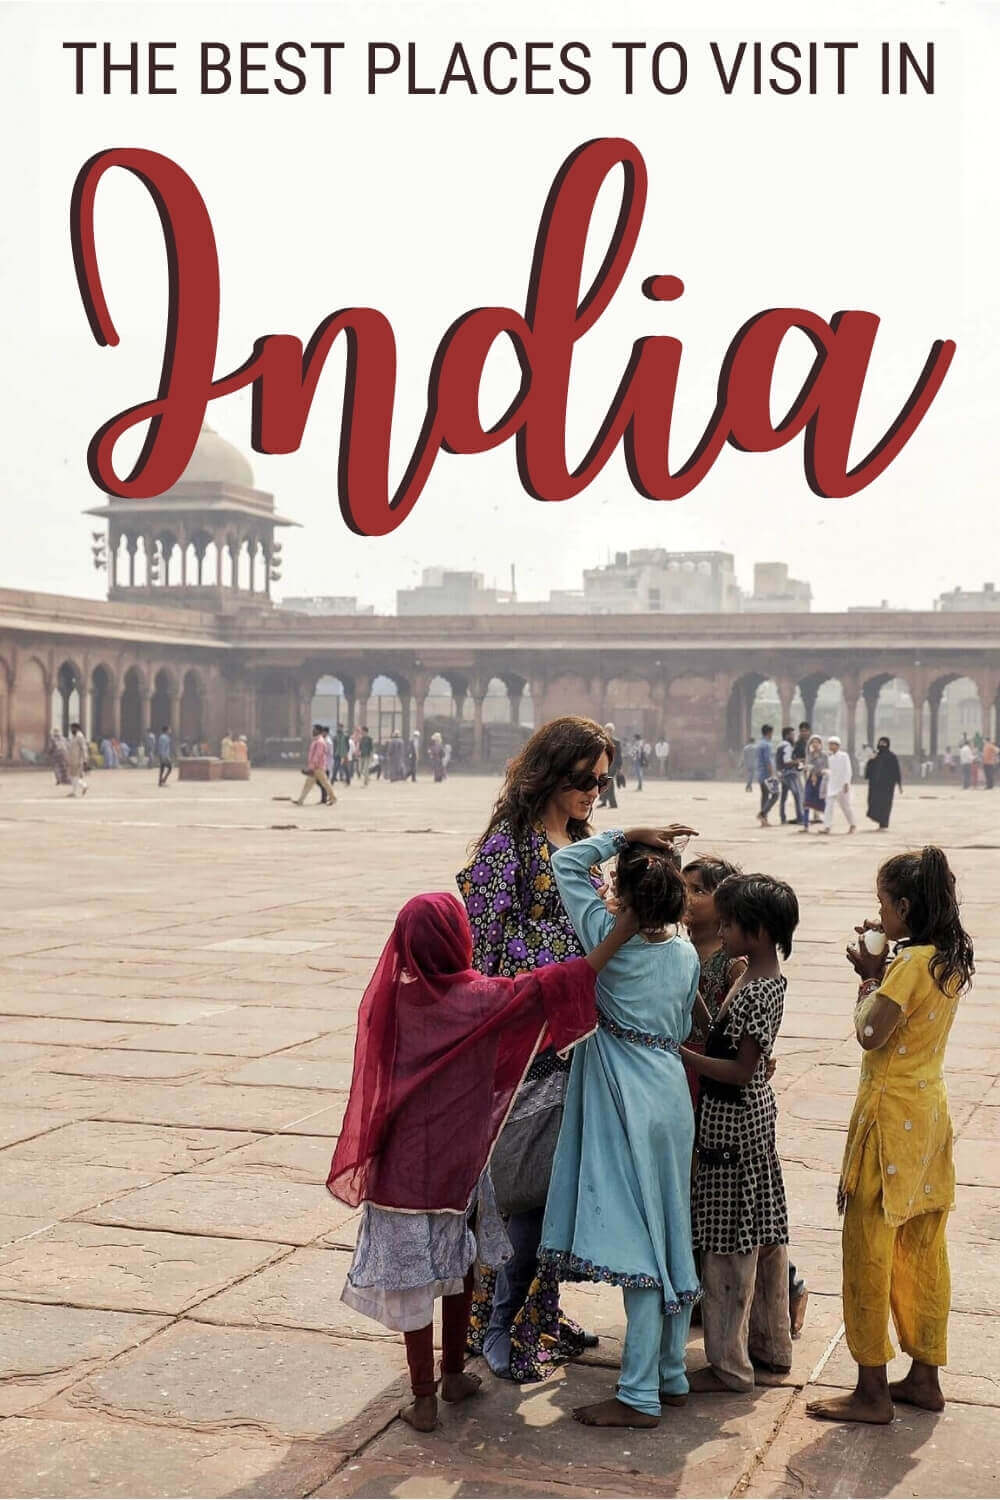 Read about the best places to visit in India - via @clautavani